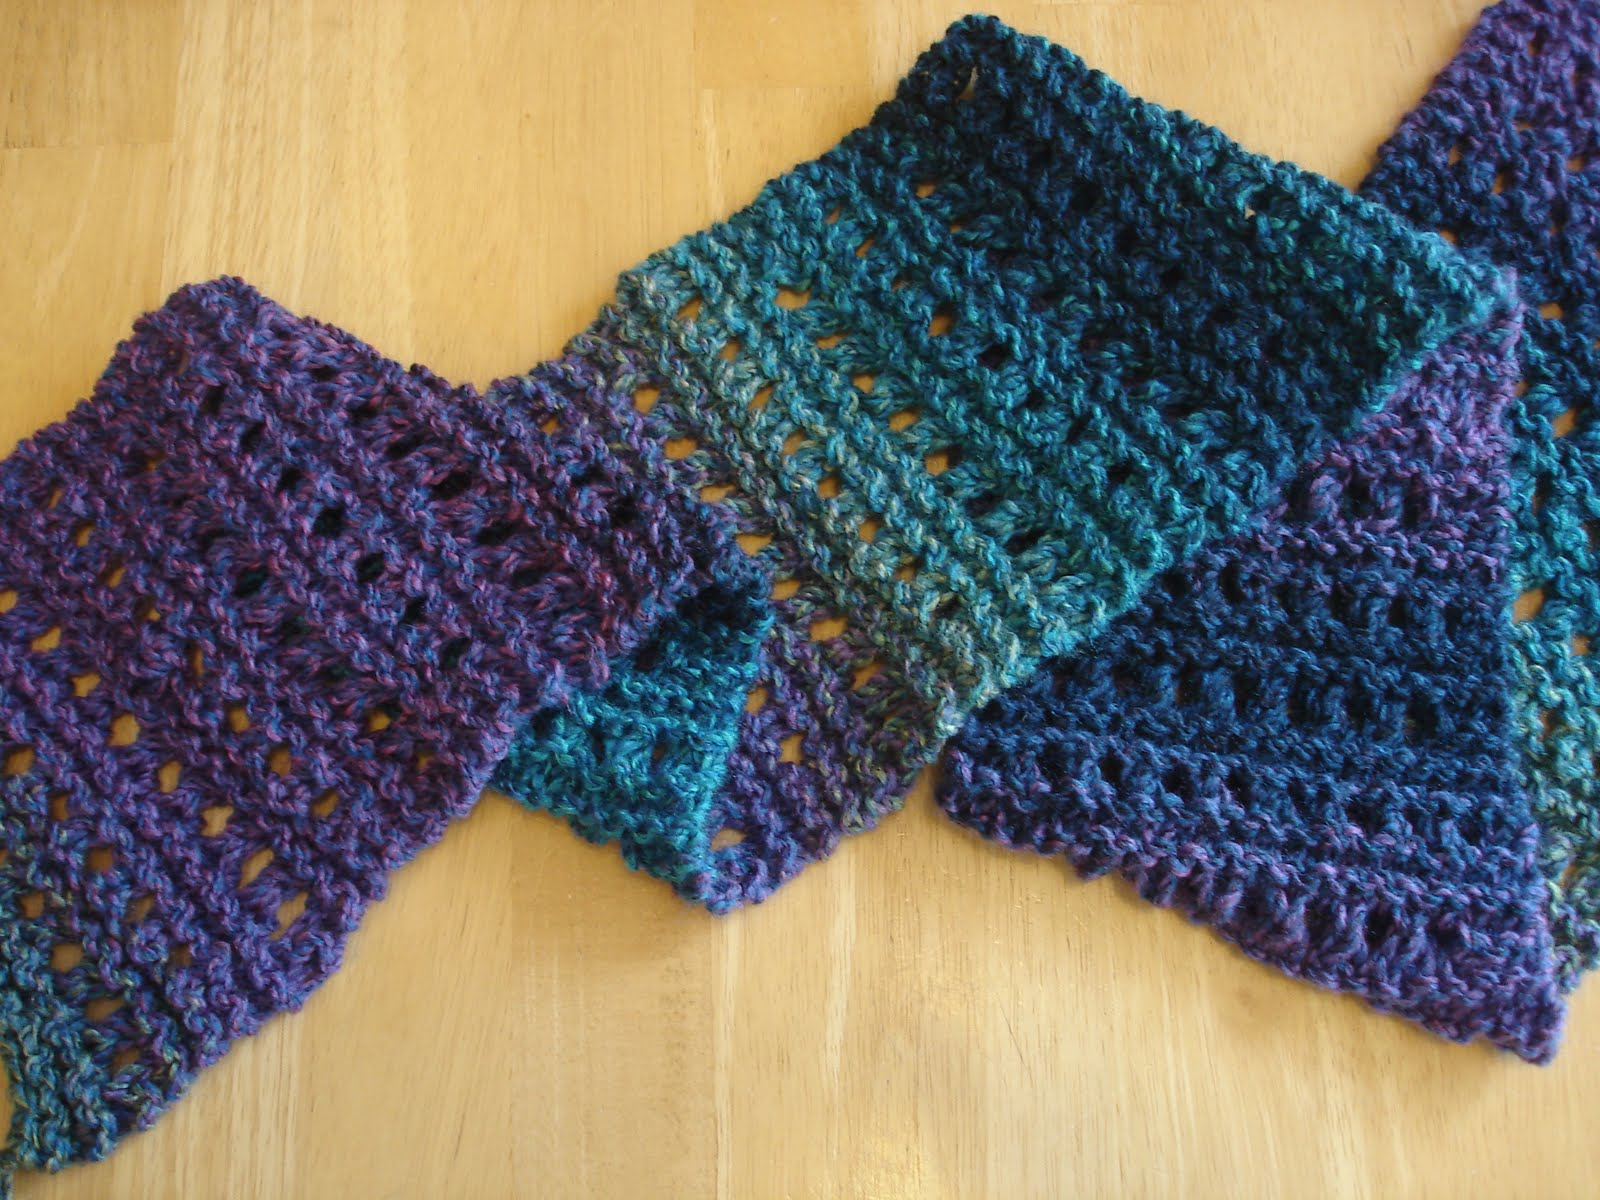 Ravelry: Spring Ripple Scarf pattern by Angela Best